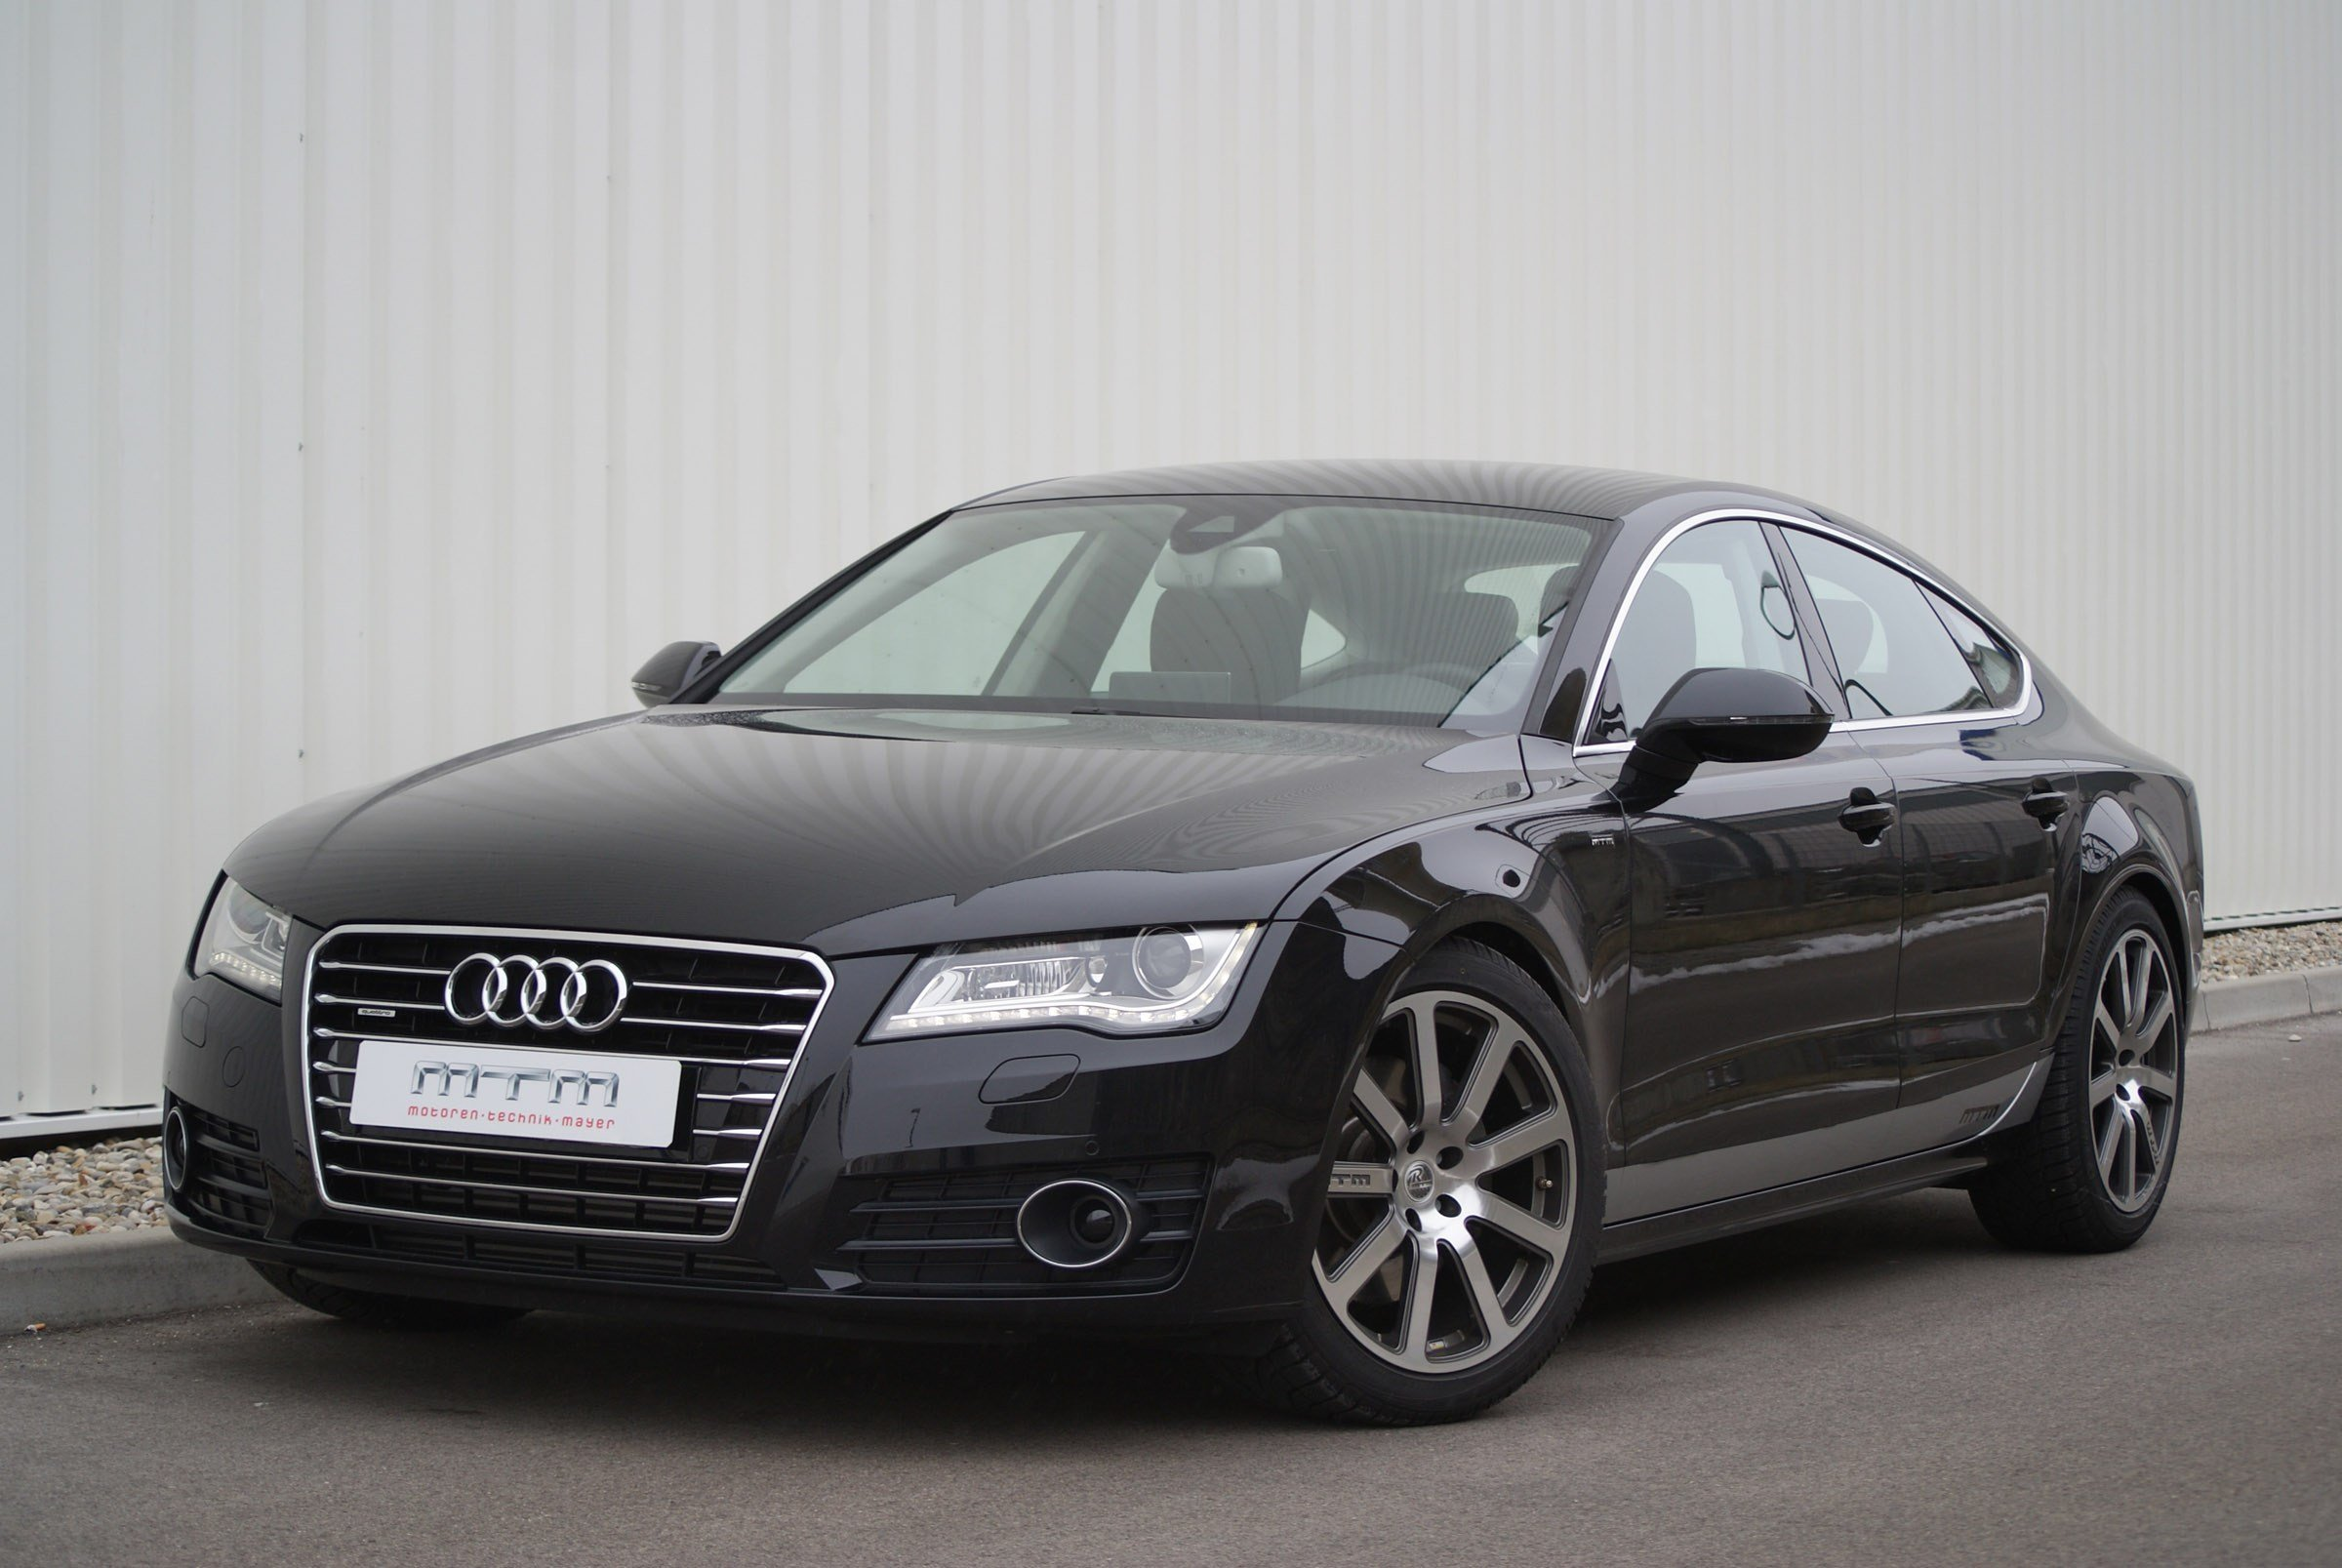 Latest Audi A7 Tuning Car Tuning Free Download